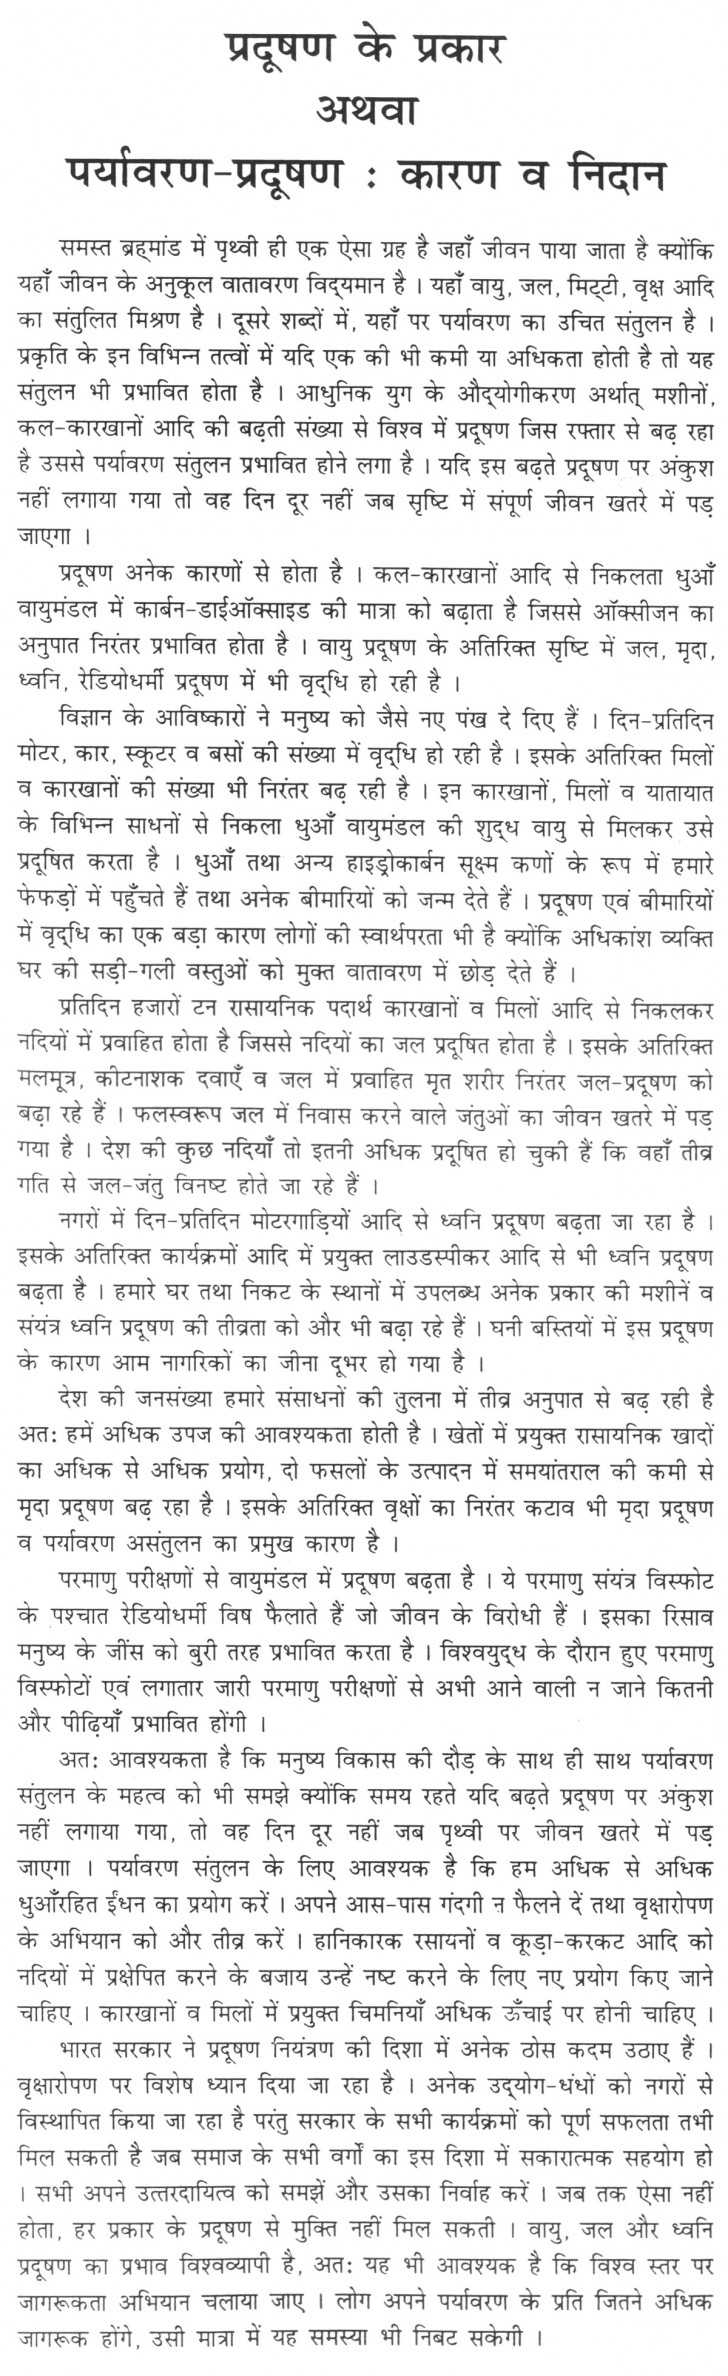 014 Good Habits Essay In Hindi Exceptional Bad Eating Habit 728